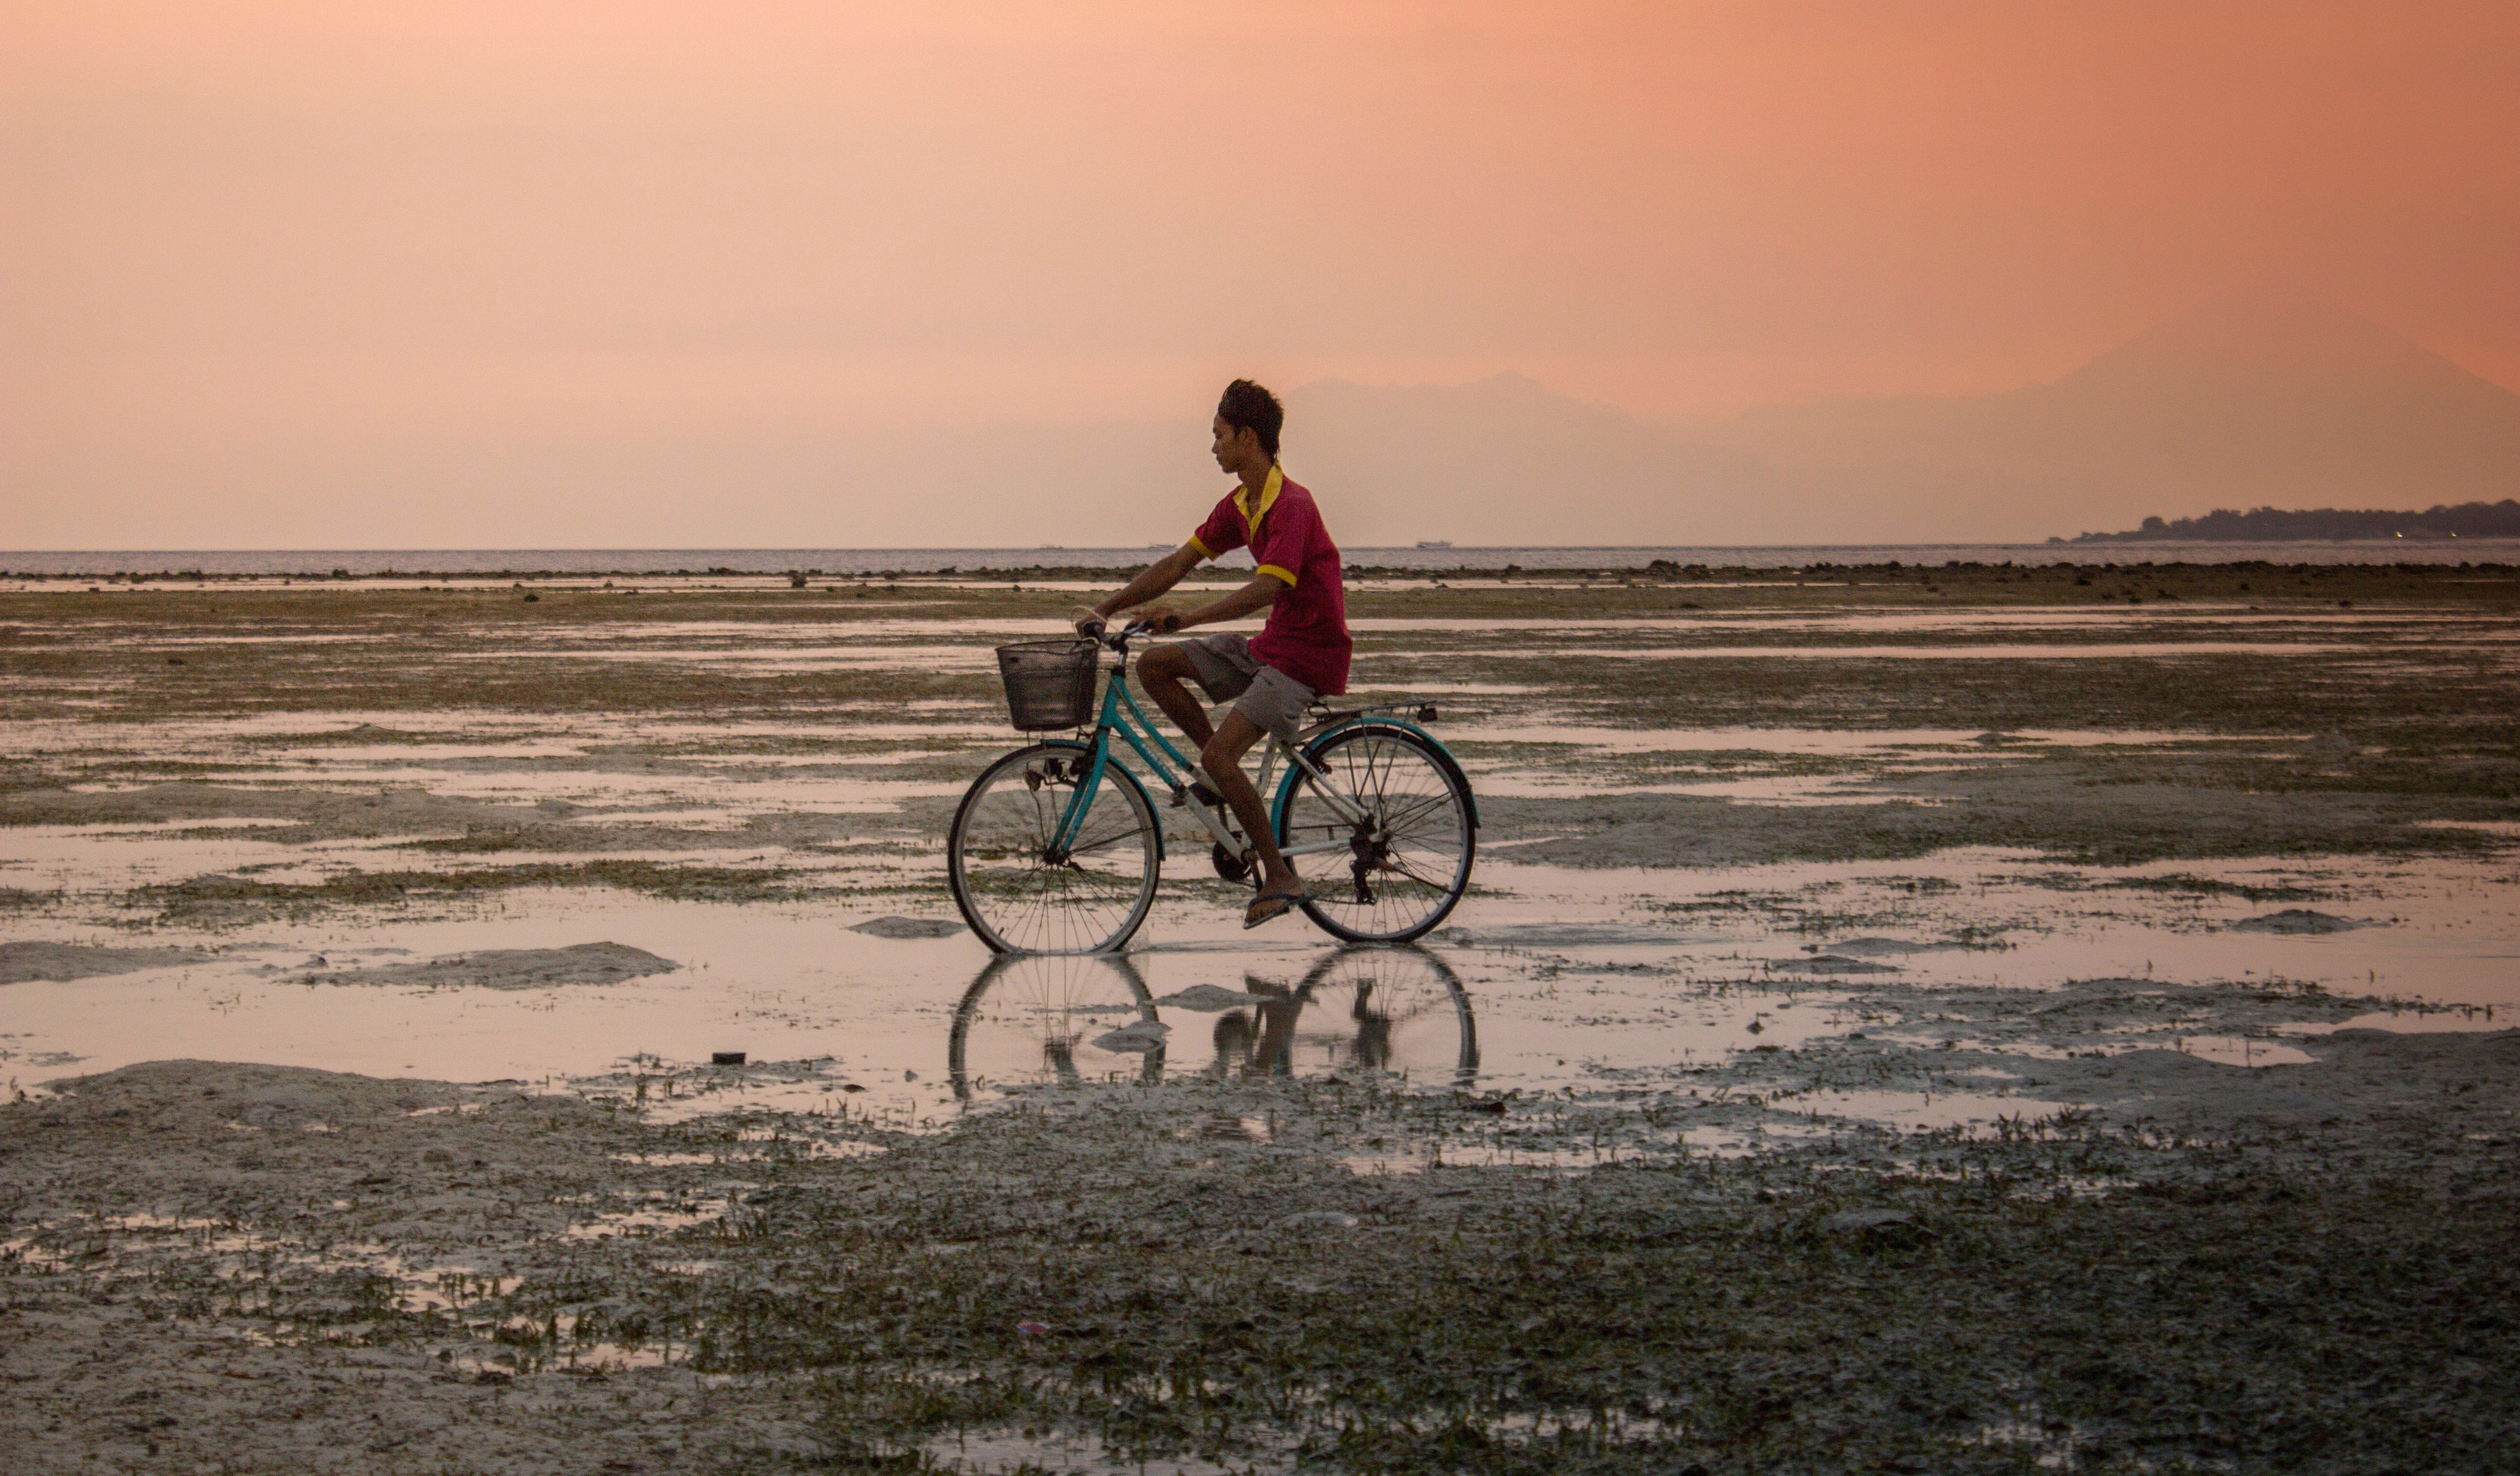 Gili Air, Indonesia - Luca Zanon